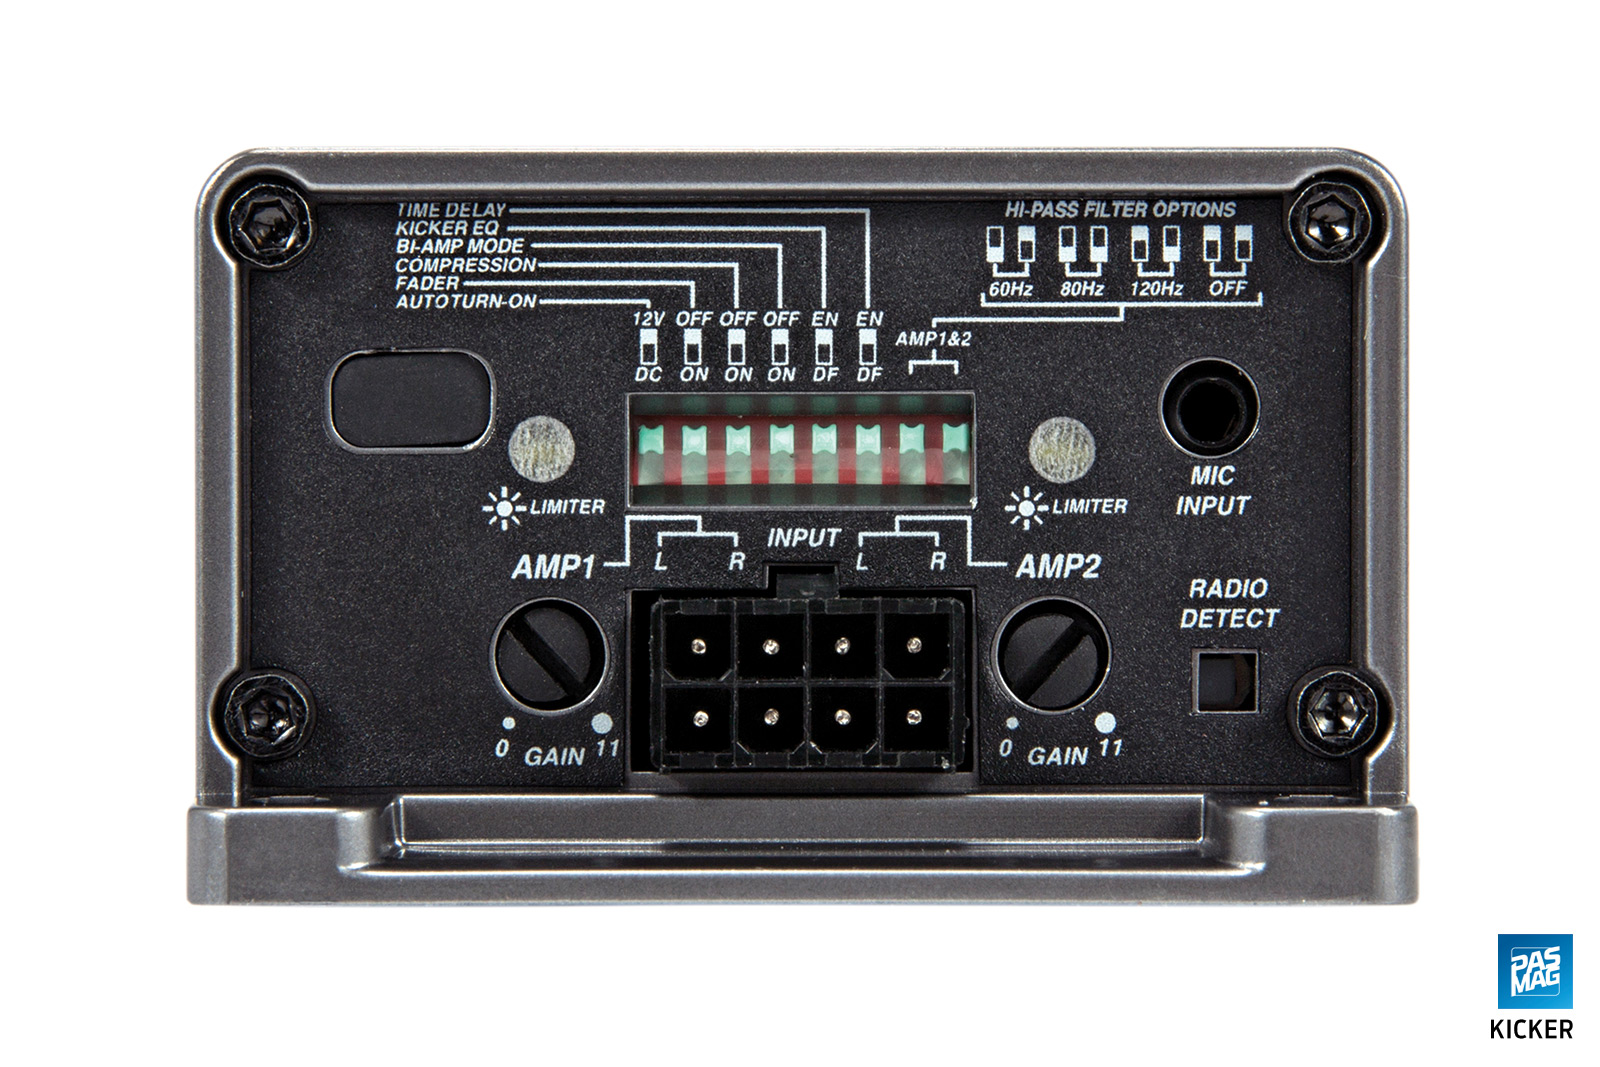 Kicker KEY180.4 Amplifier